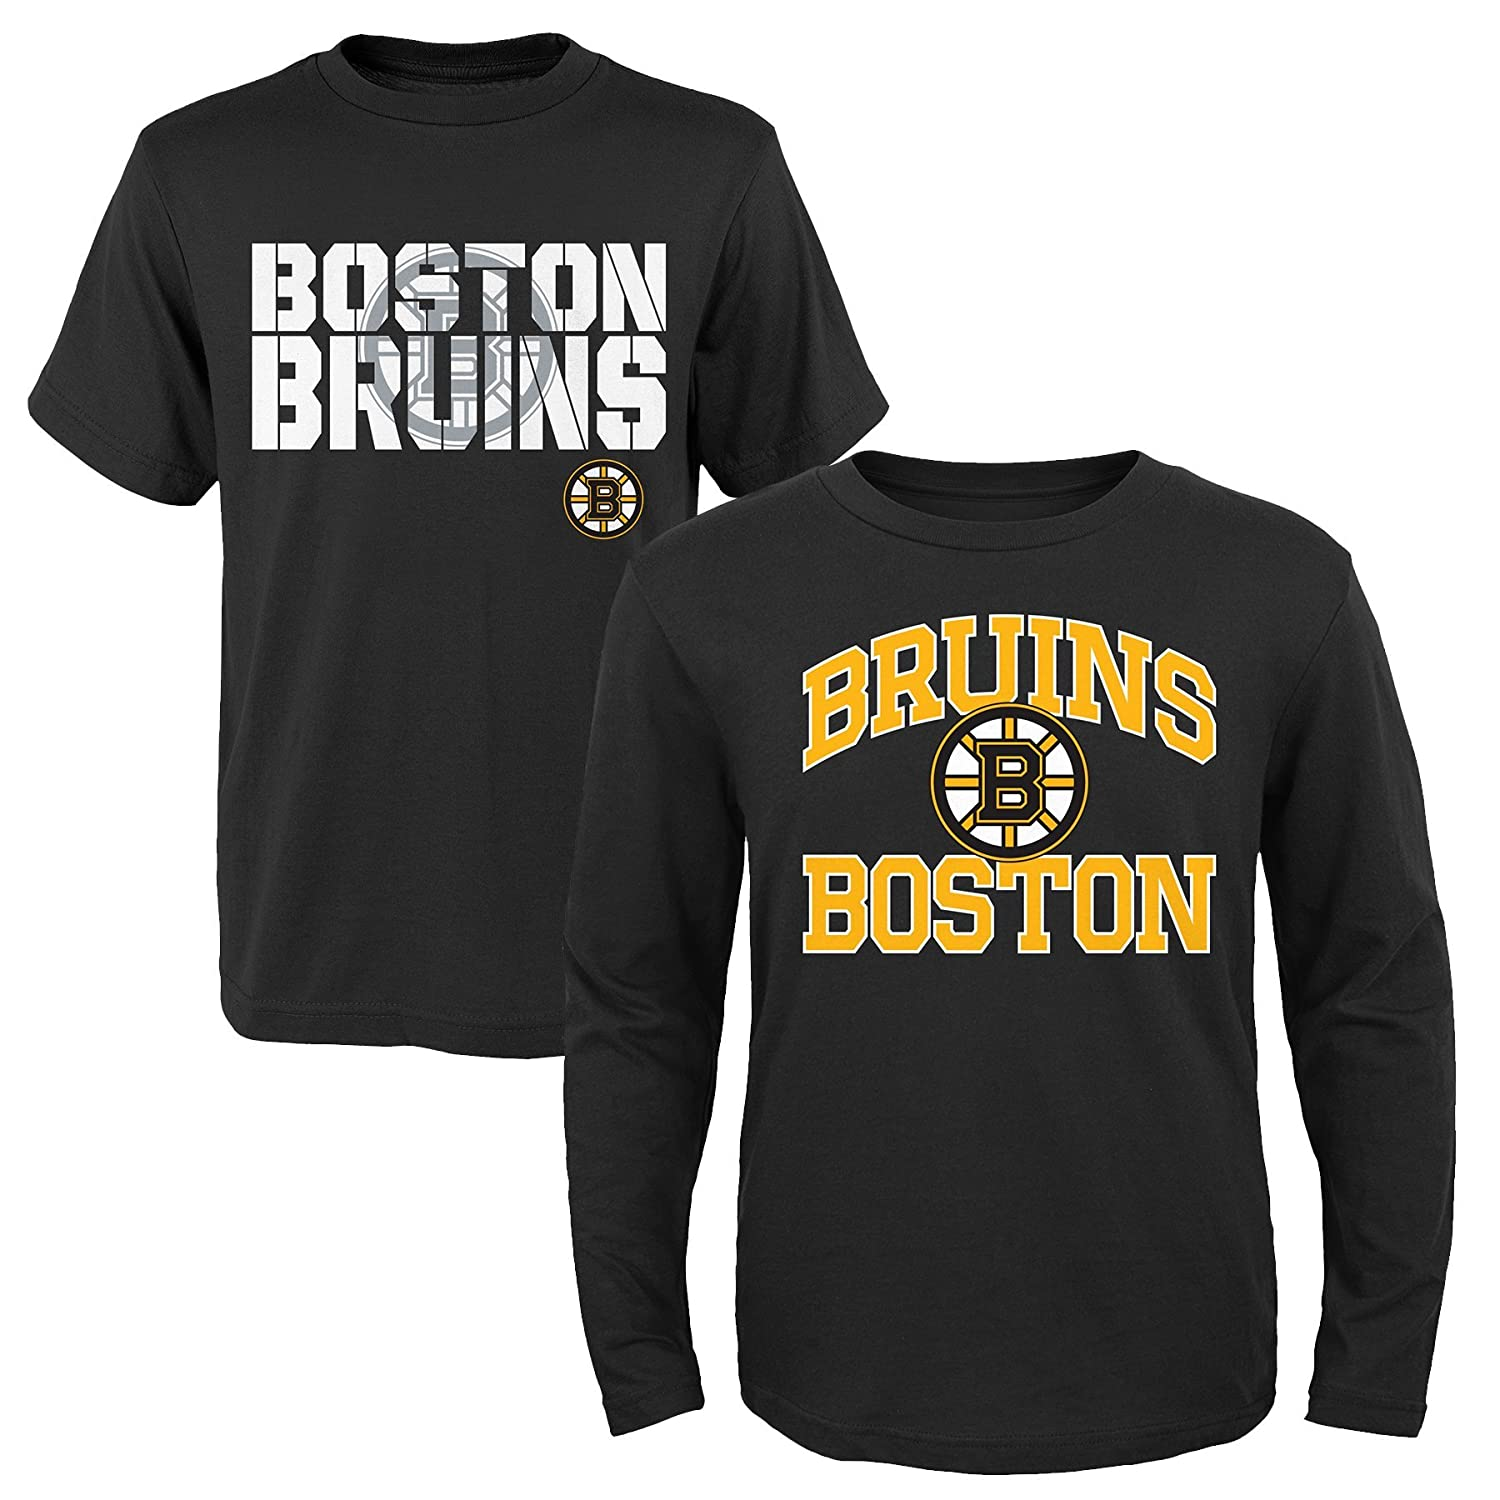 魅力の NHLユースBoys 8 – 20 20 8 Bruins 2piece Long &半袖Tシャツセット – Large Boston Bruins B01M0HWUAH, カミイソグン:1f7fe864 --- a0267596.xsph.ru